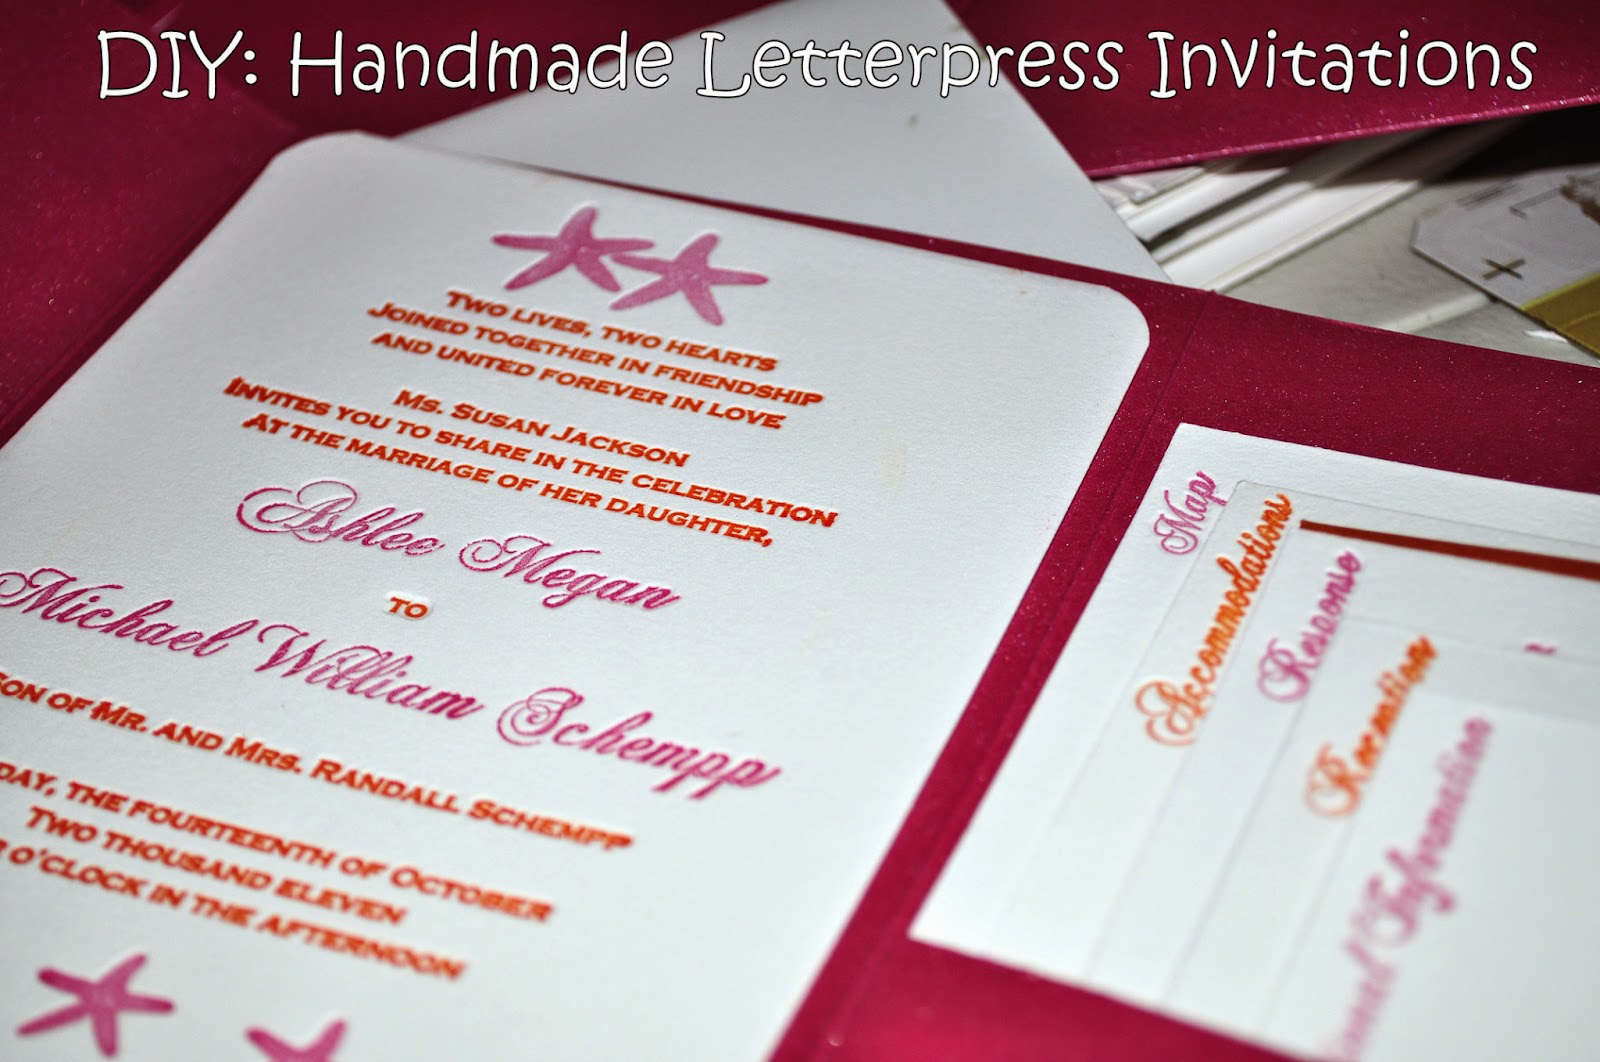 Wedding Invites Letterpress: The Glitter Mouse: DIY: Handmade Letterpress Wedding